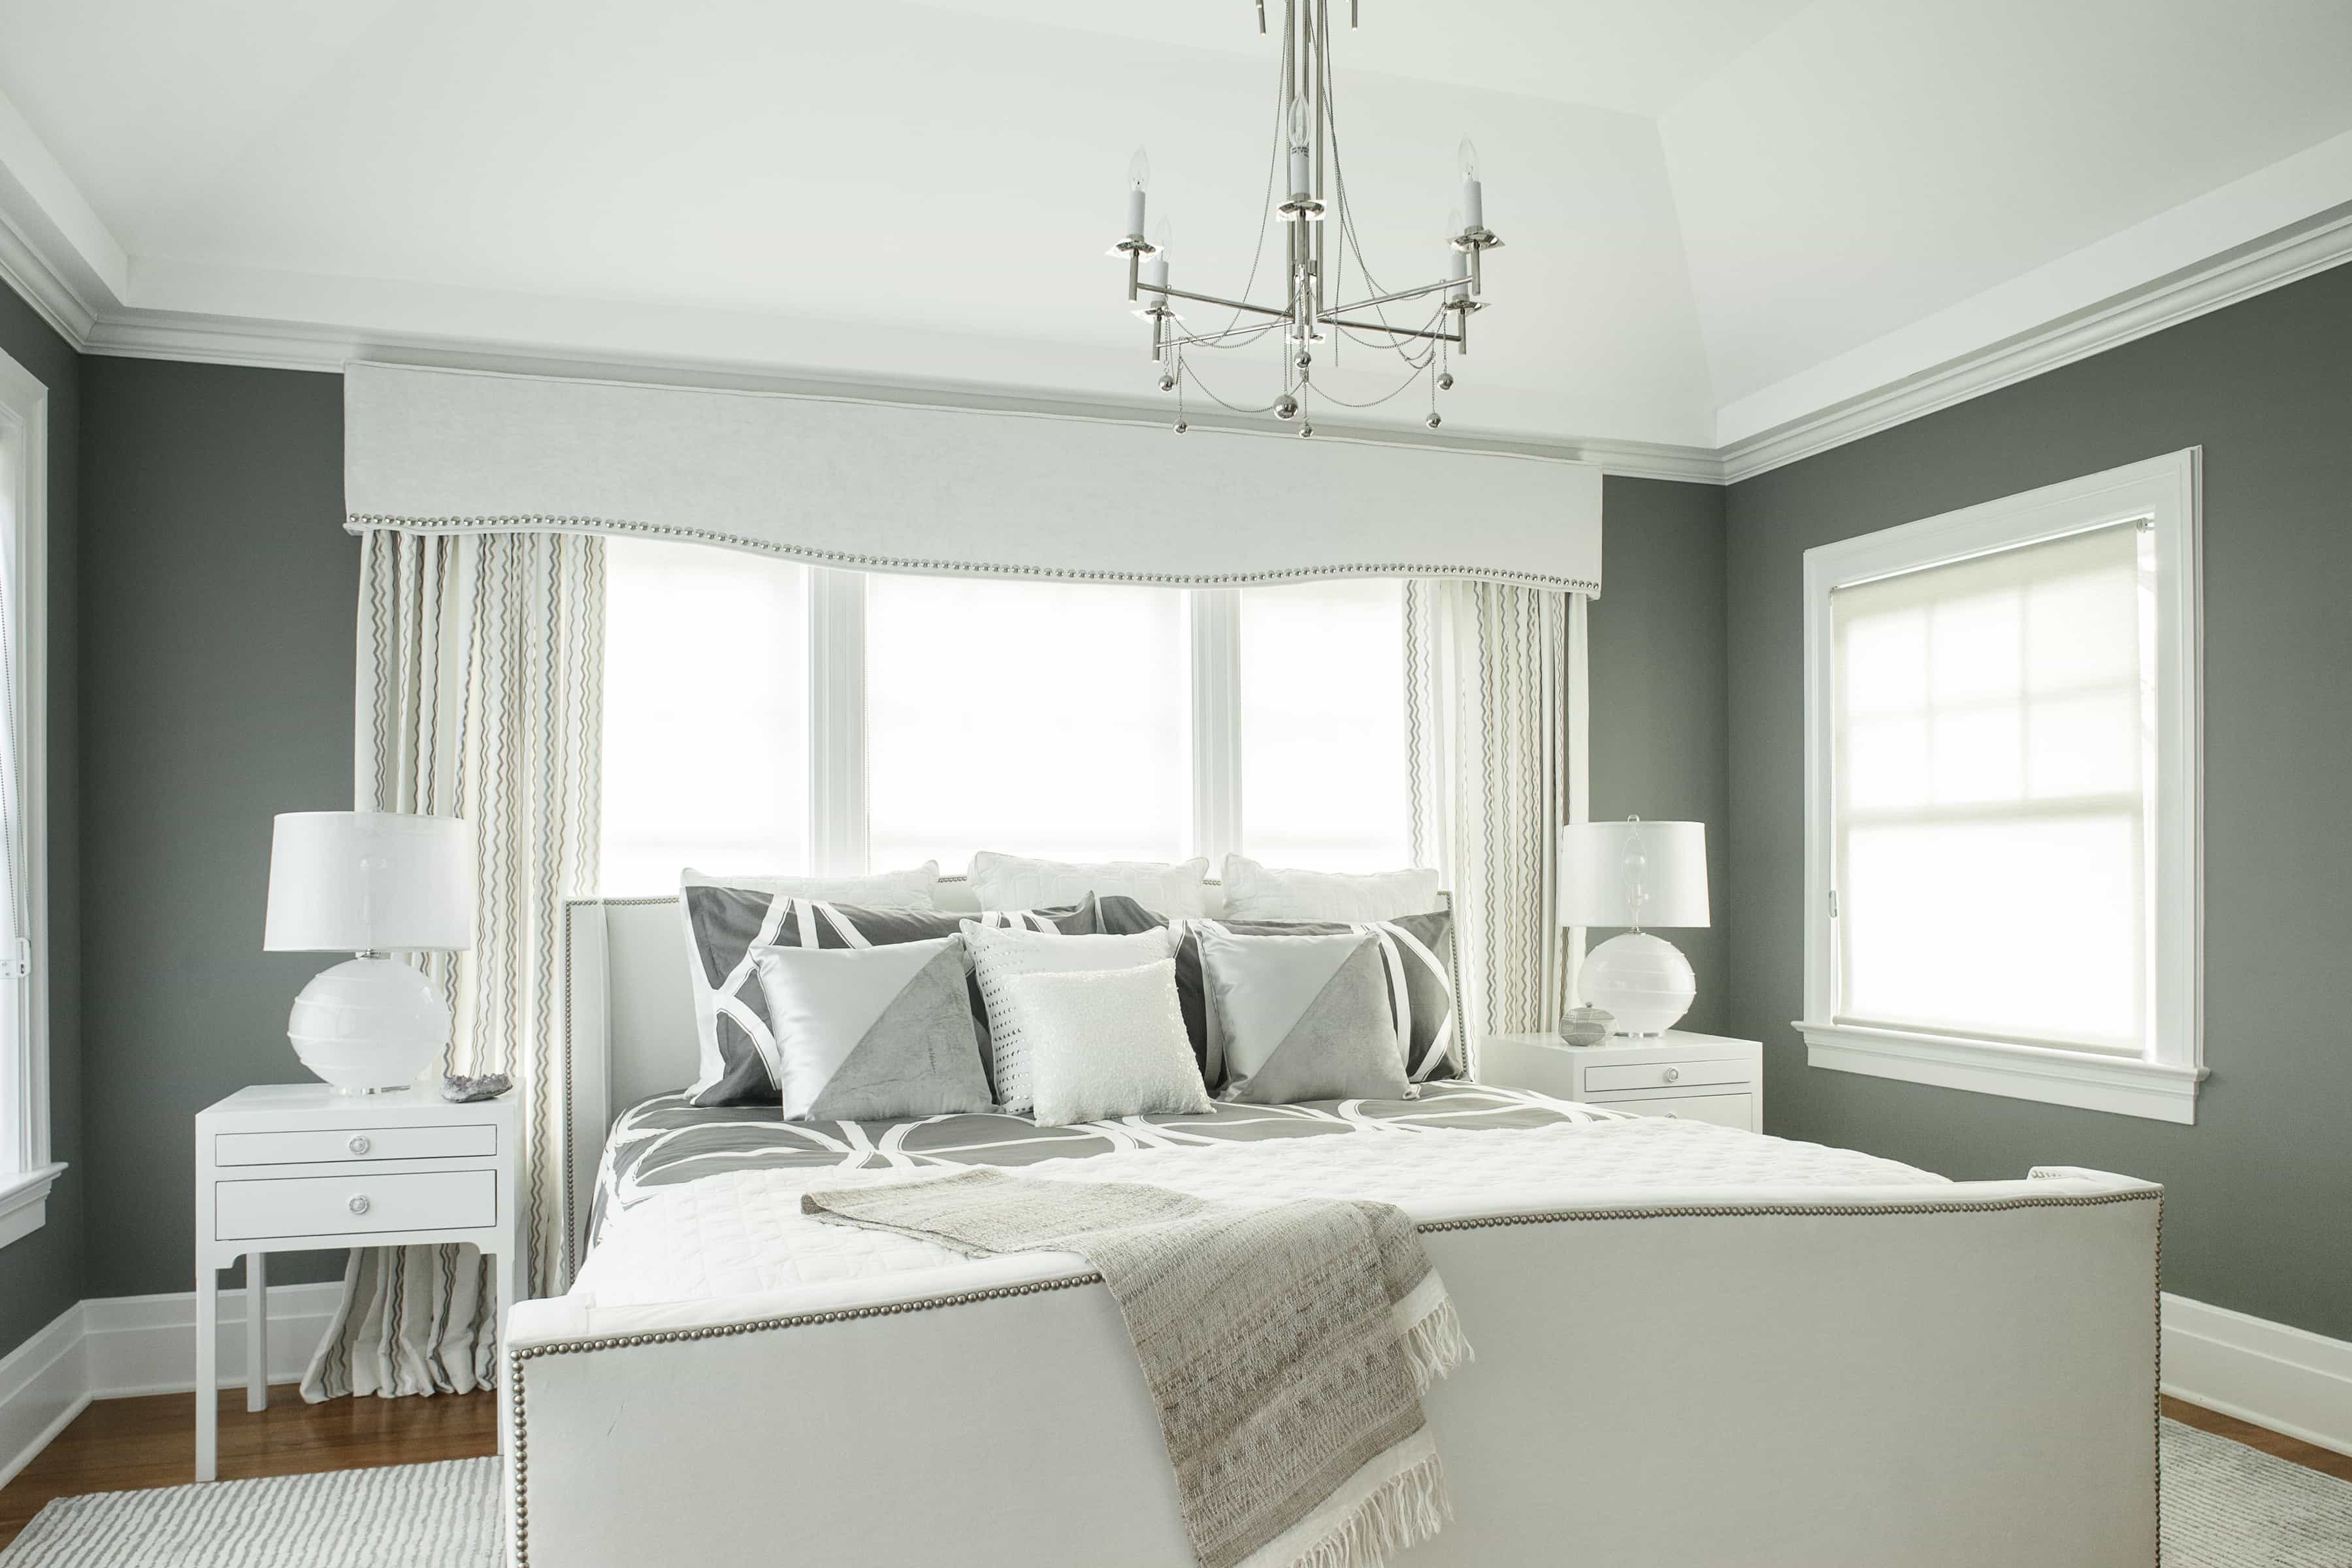 Bright White Window Cornices For Classical Bedroom Design (Image 3 of 20)